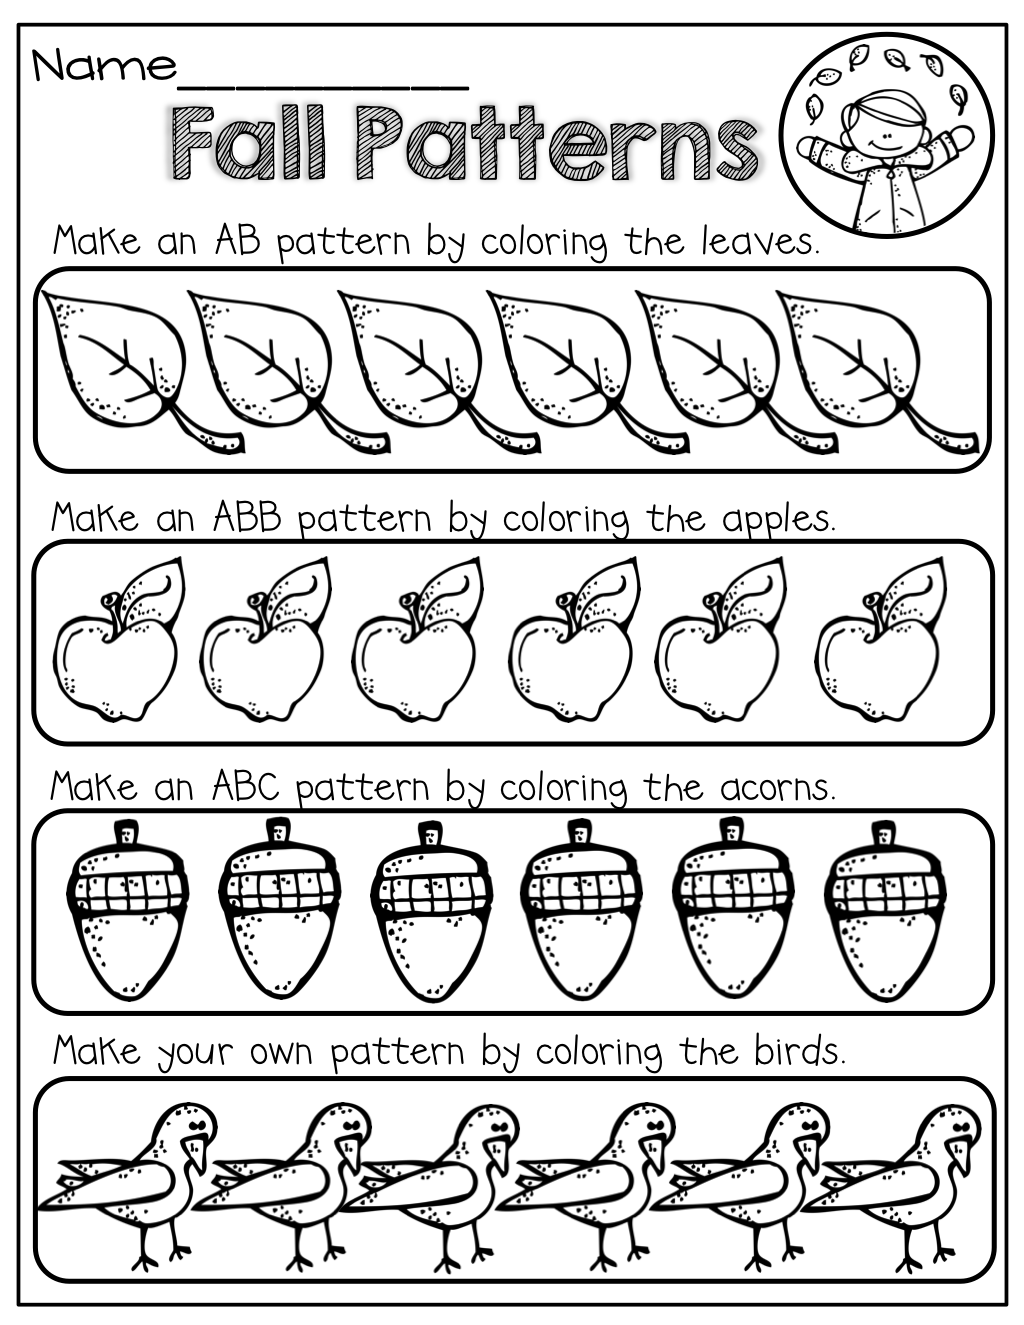 worksheet Fall Worksheets For First Grade color to make a fall pattern kinderland collaborative pinterest 1st grade activities1st math worksheetshalloween